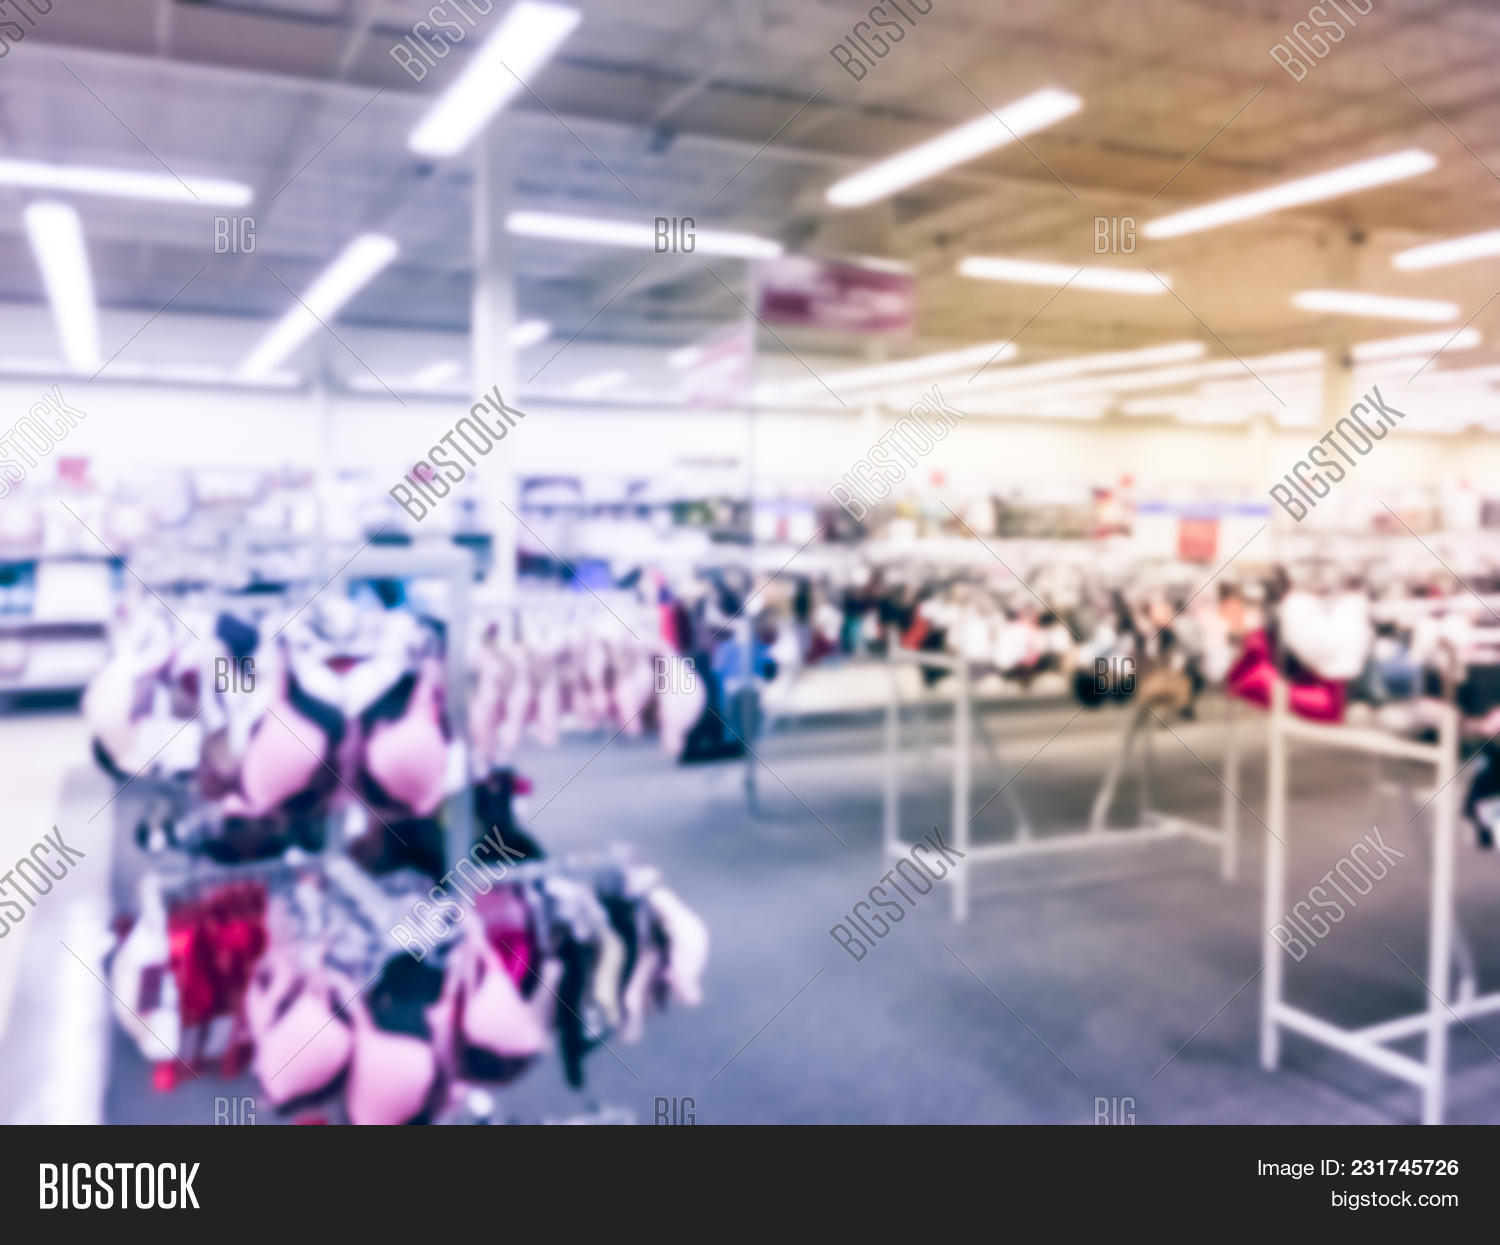 be0b2535890 Blurred abstract wide variety of bras intimate apparel at off-price  department store retailer. Colorful modern women lingerie